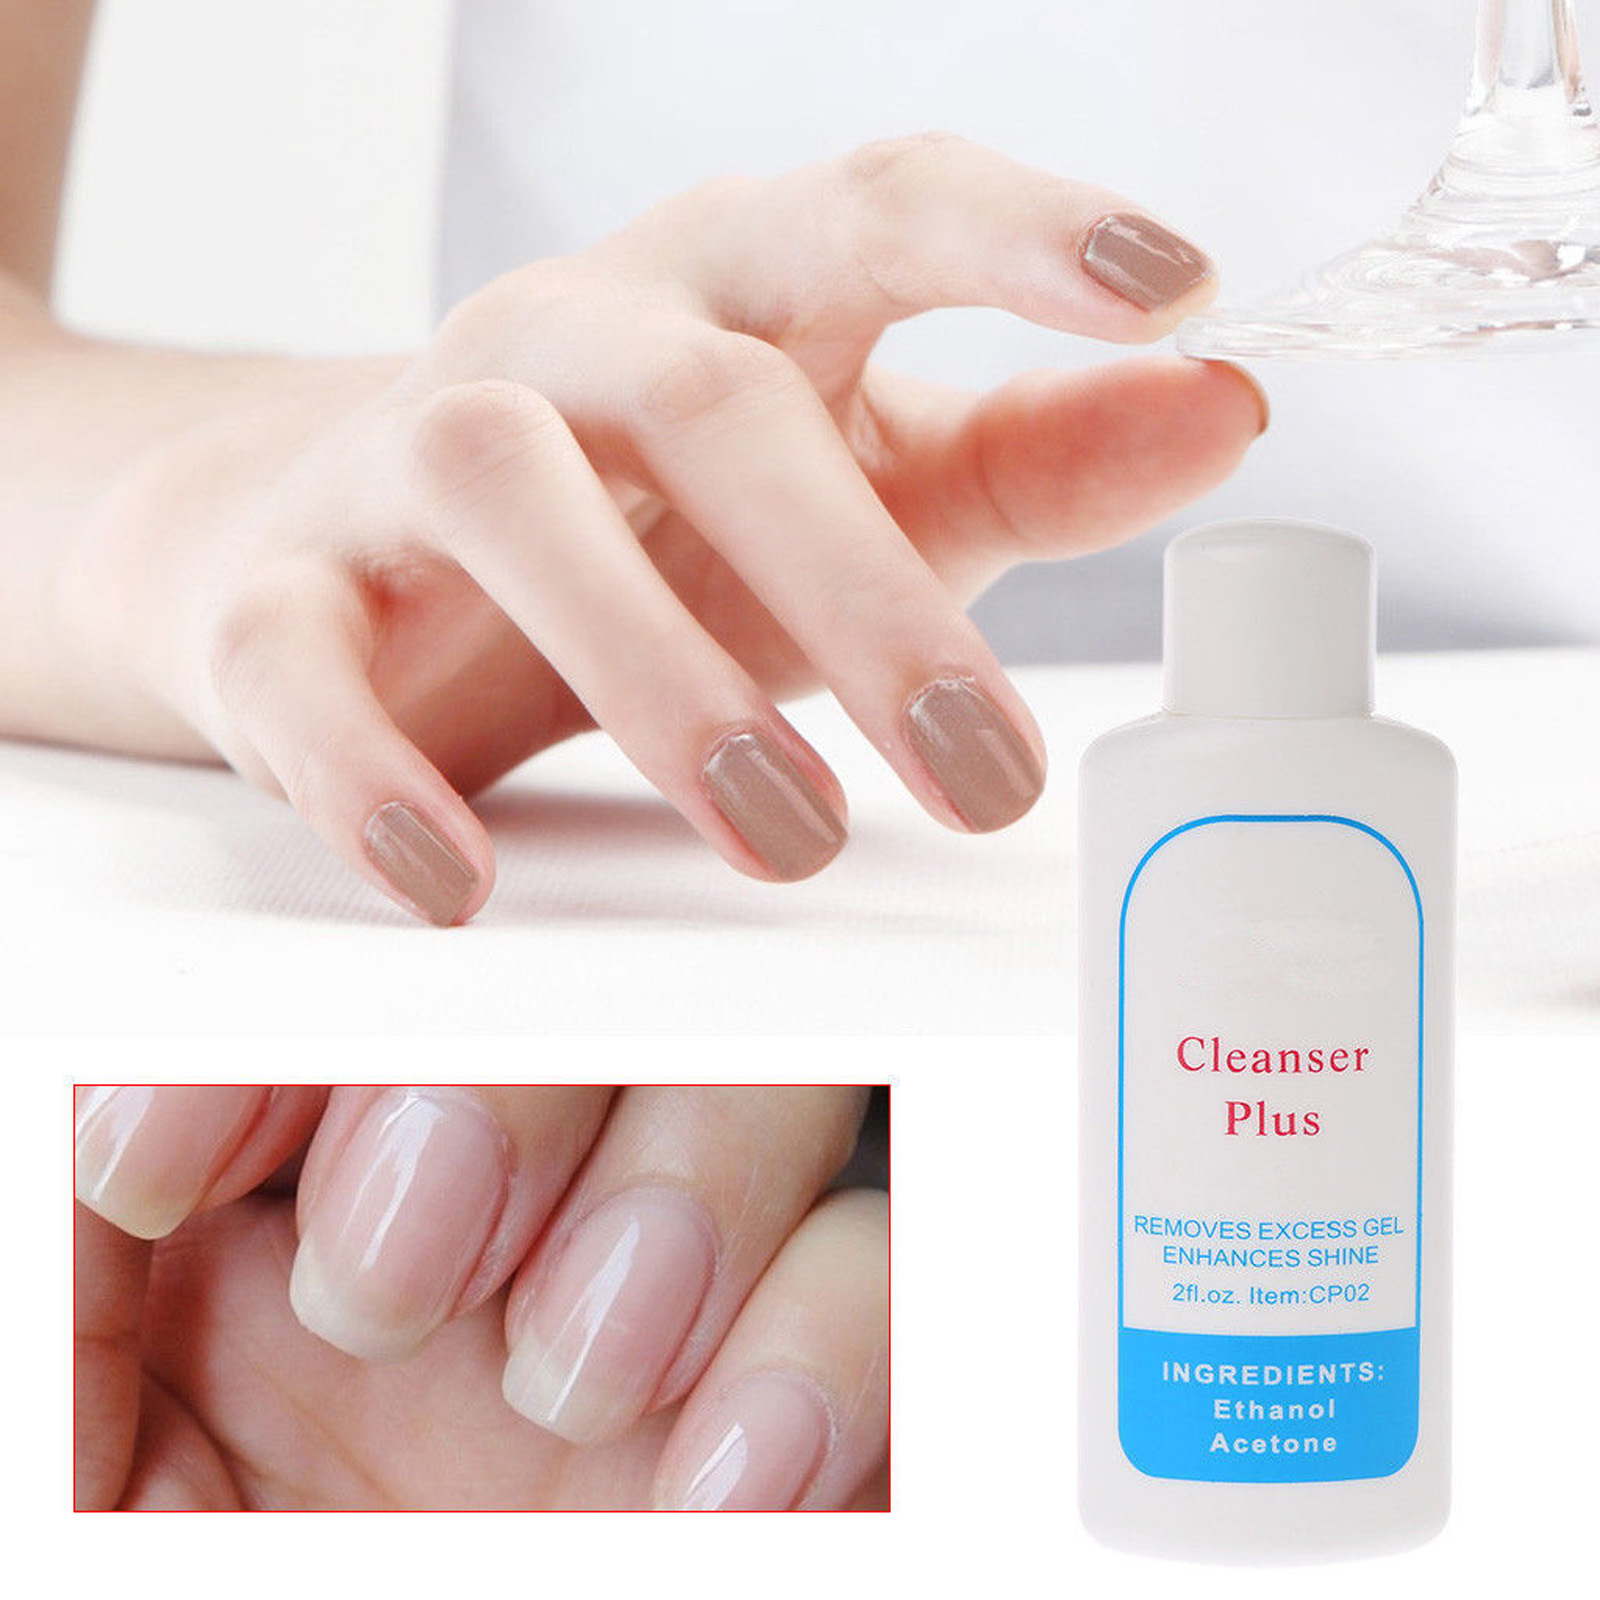 UV Gel Nail Art DIY Excess Gel Remover cleanser plus Cleaning ...